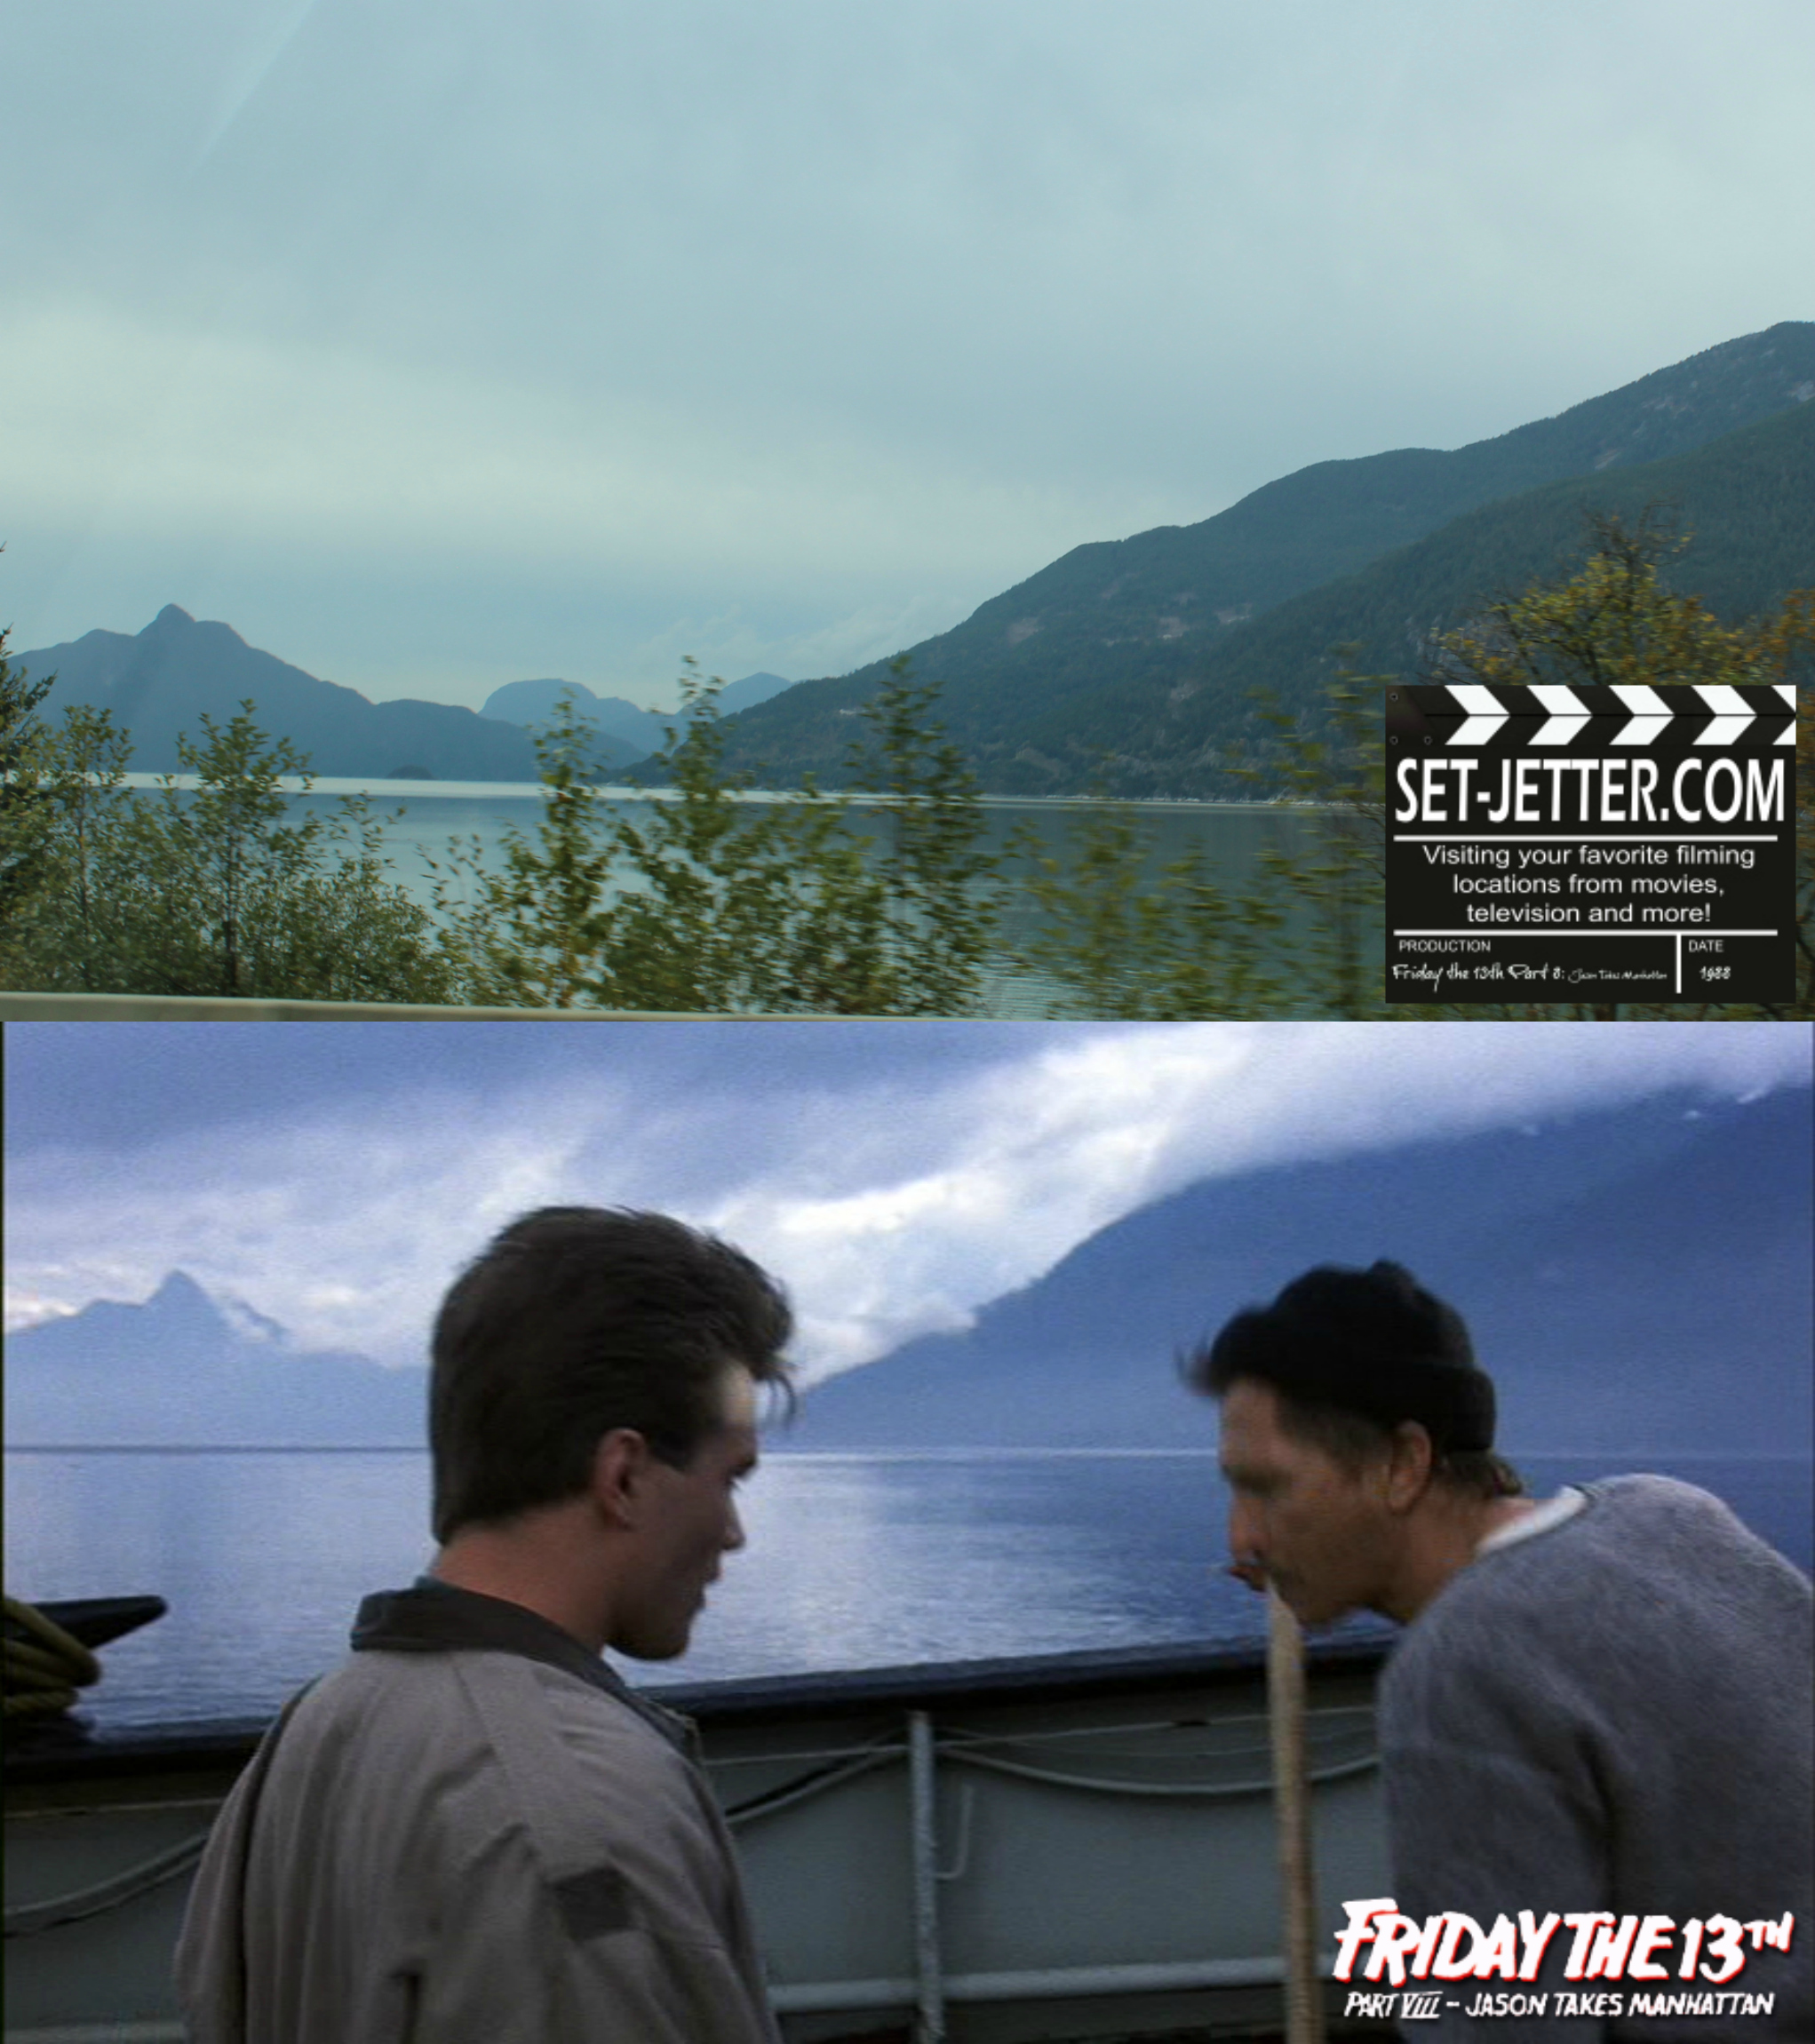 Friday the 13th Part 8 comparison 01.jpg